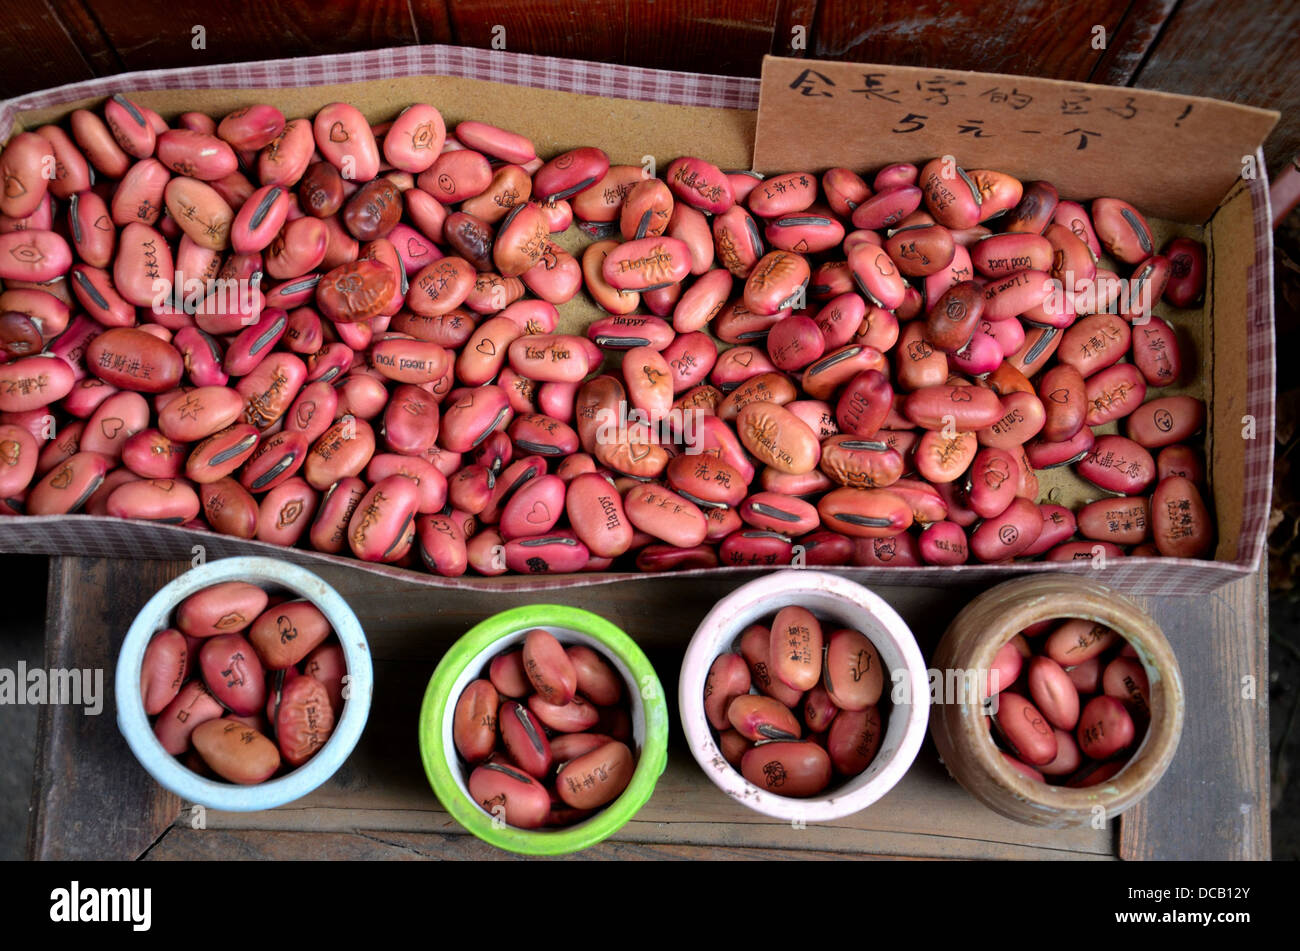 Beans with cute English and Chinese messages - Stock Image